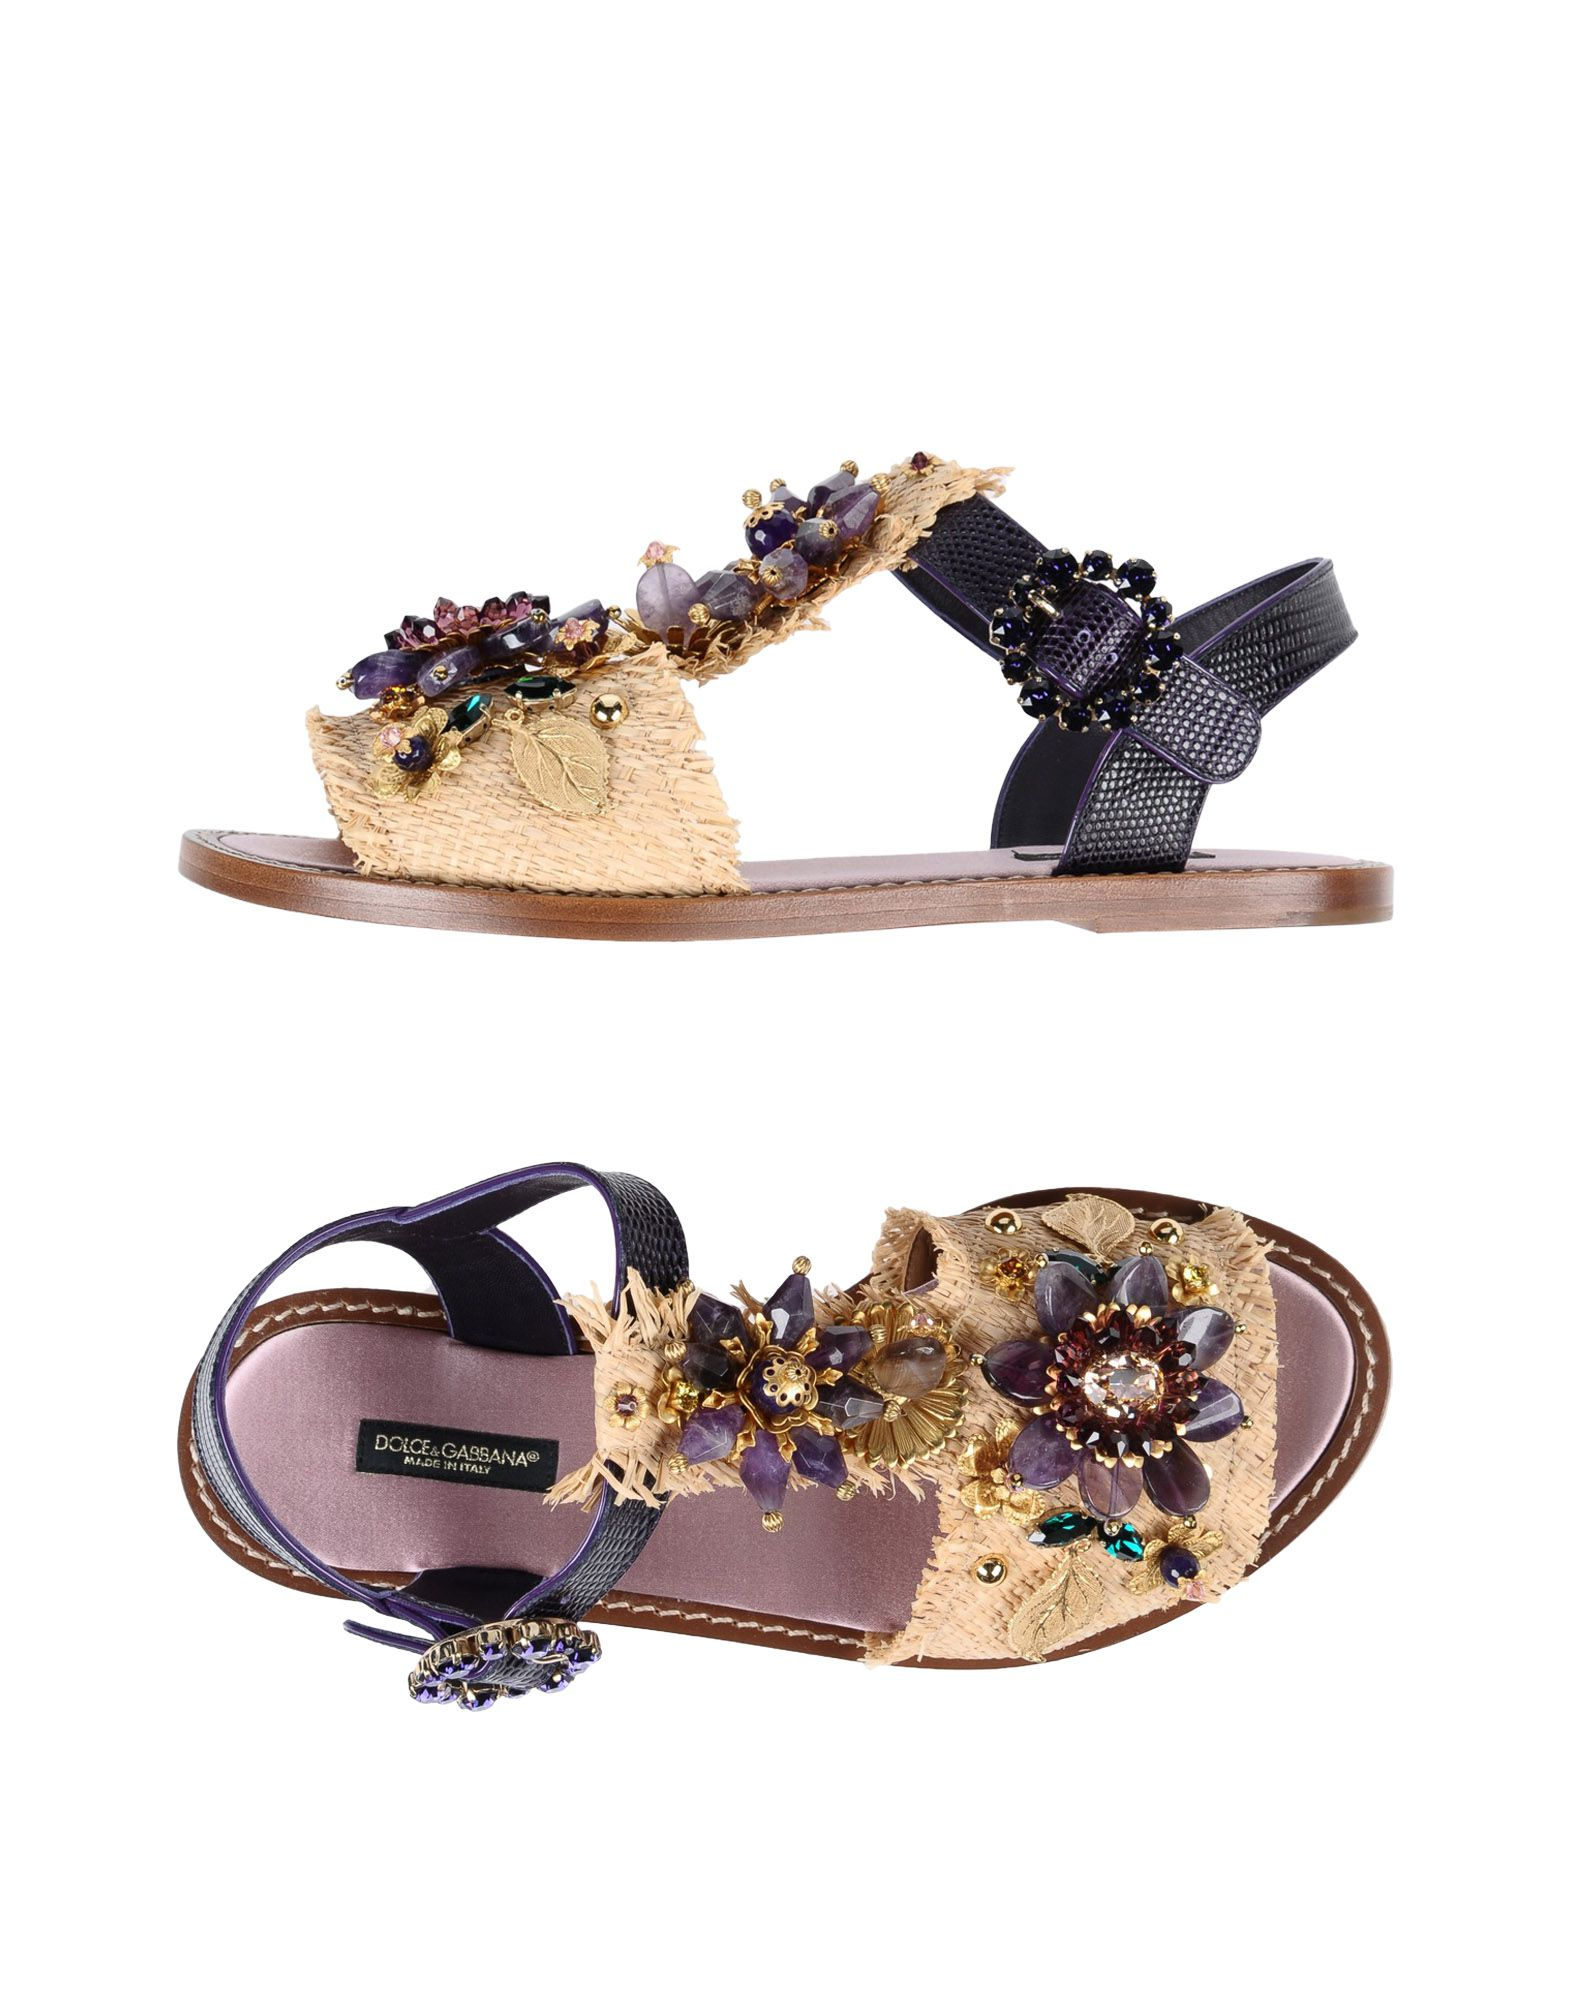 Dolce & Gabbana Sandals Sandals Sandals - Women Dolce & Gabbana Sandals online on  United Kingdom - 11508359DG dafe70